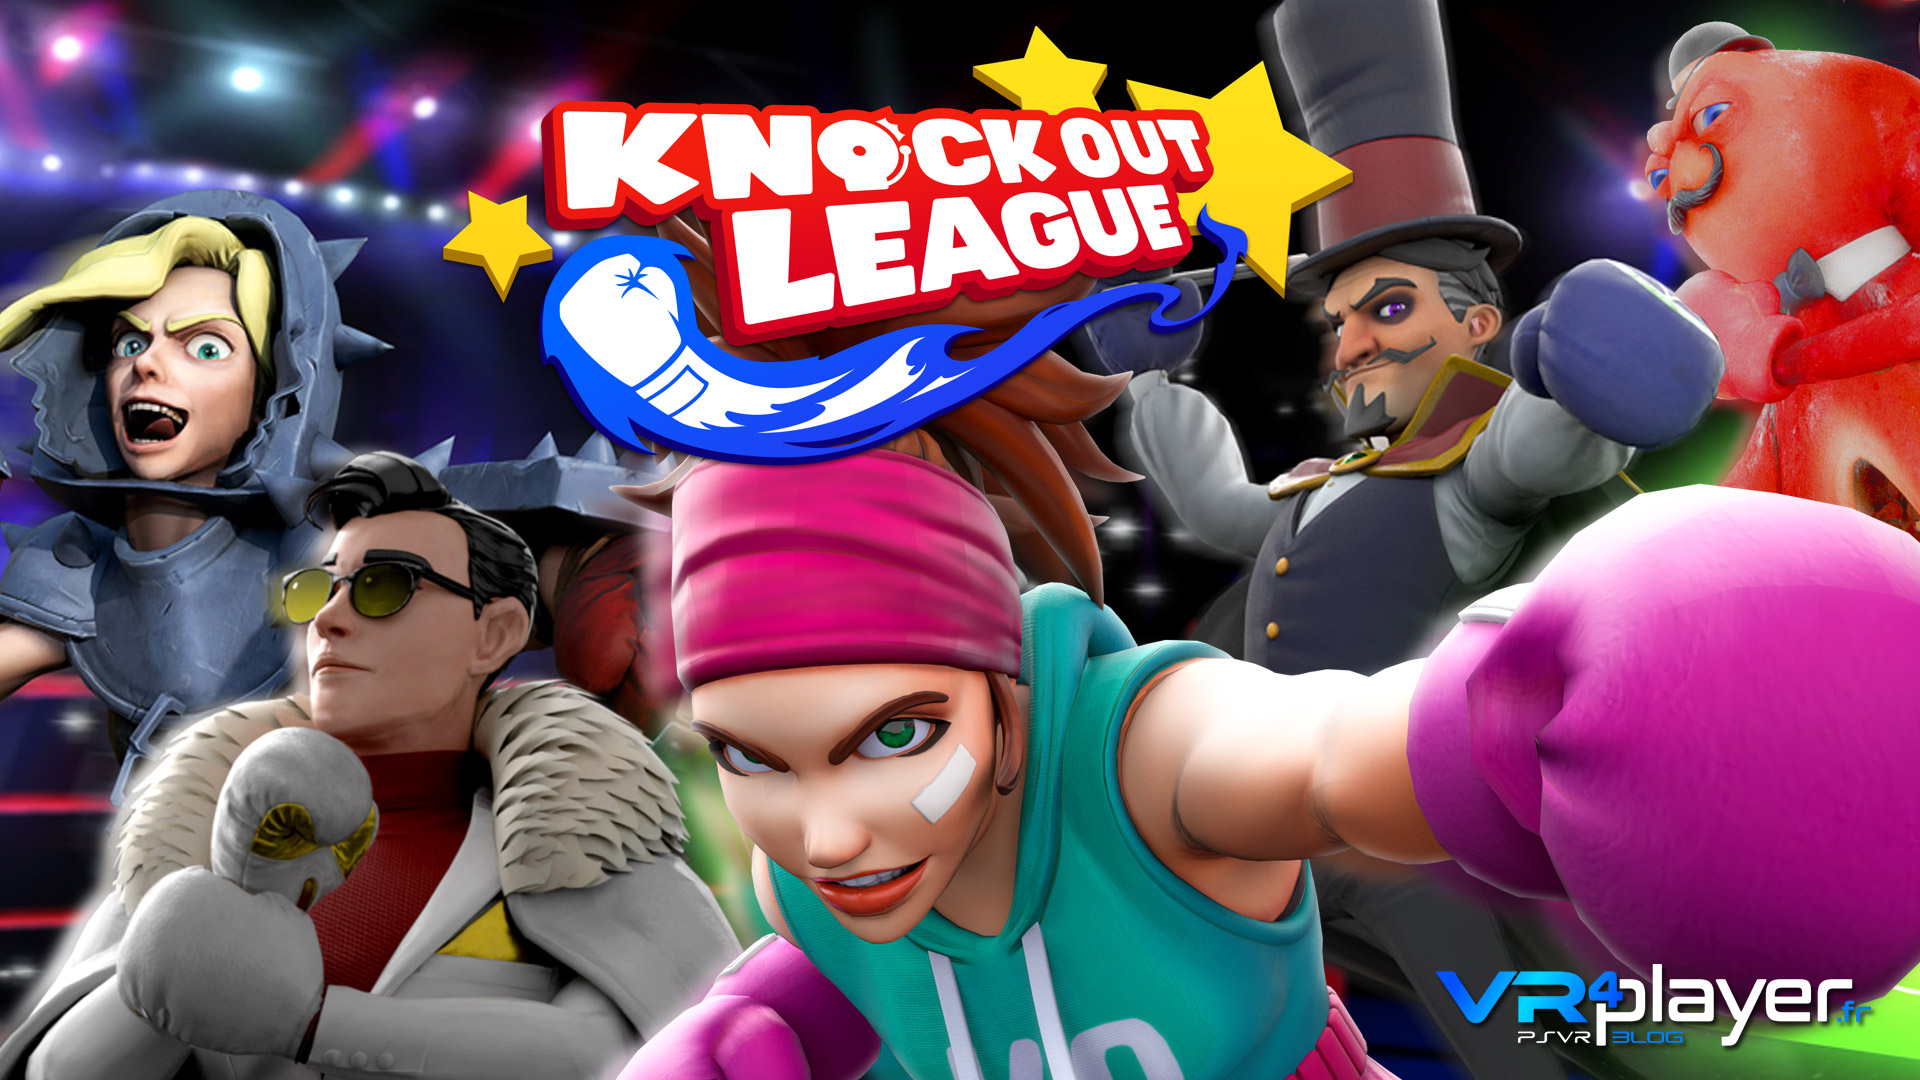 Knockout League PlayStation VR vrplayer.fr